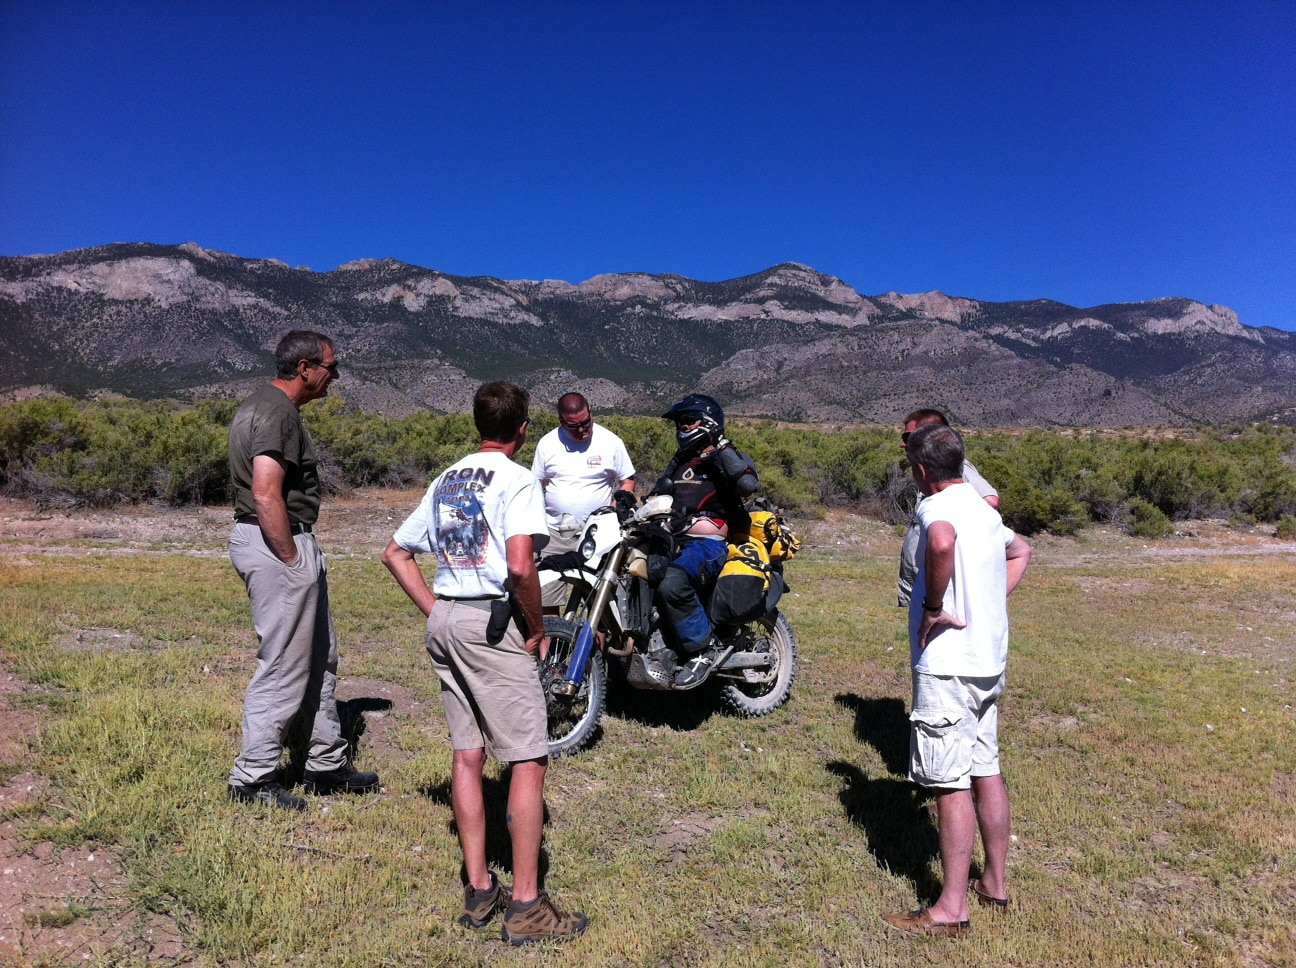 Land Rover Expedition America  5  Rider We Met